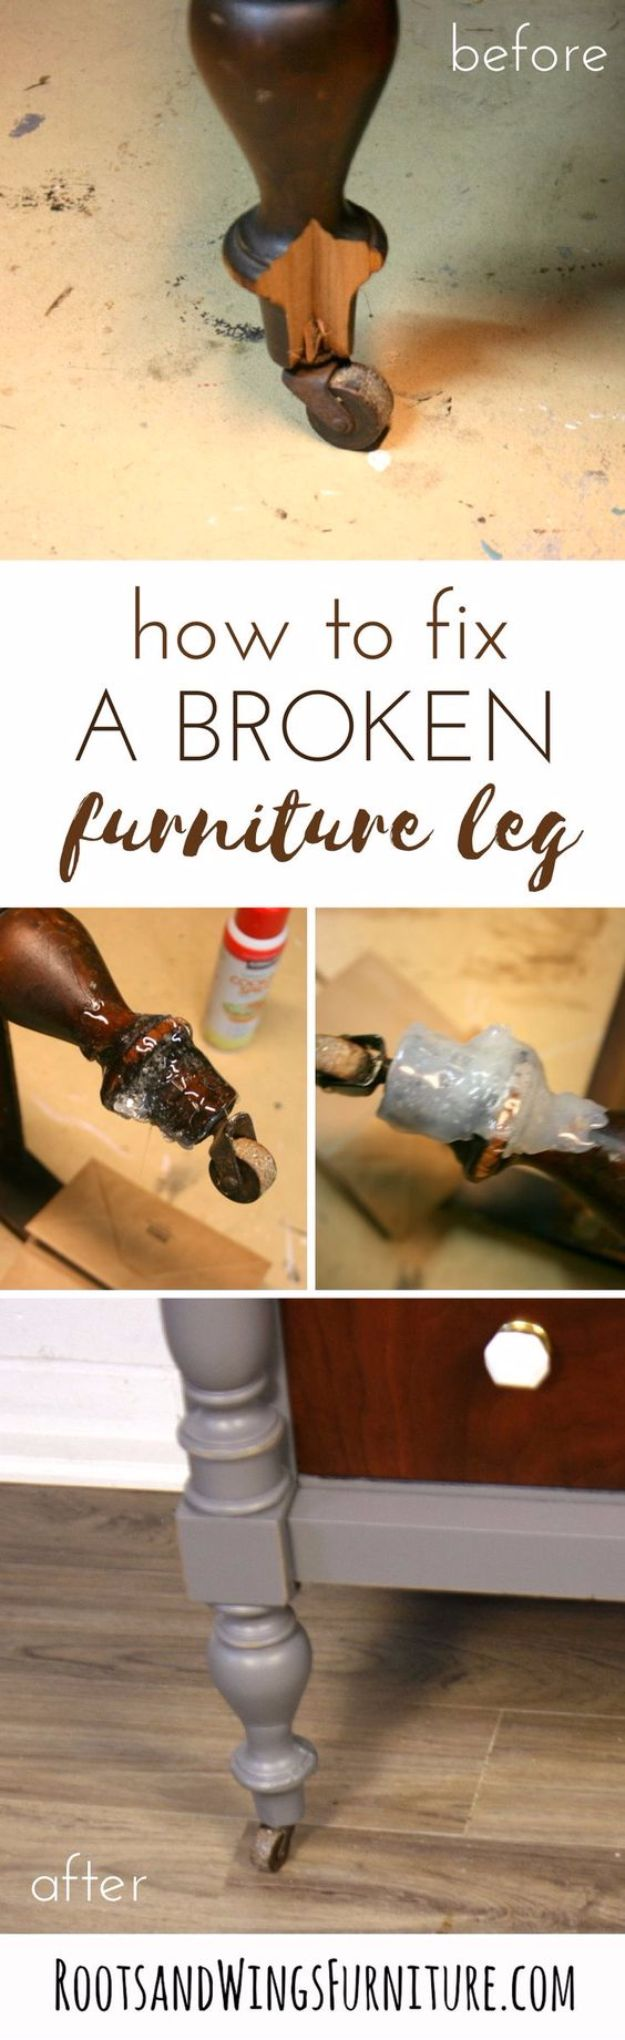 Easy Home Repair Hacks - Fix A Broken Furniture Leg - Quick Ways to Easily Fix Broken Things Around The House - DIY Tricks for Home Improvement and Repairs - Simple Solutions for Kitchen, Bath, Garage and Yard - Caulk, Grout, Wall Repair and Wood Patching and Staining #hacks #homeimprovement